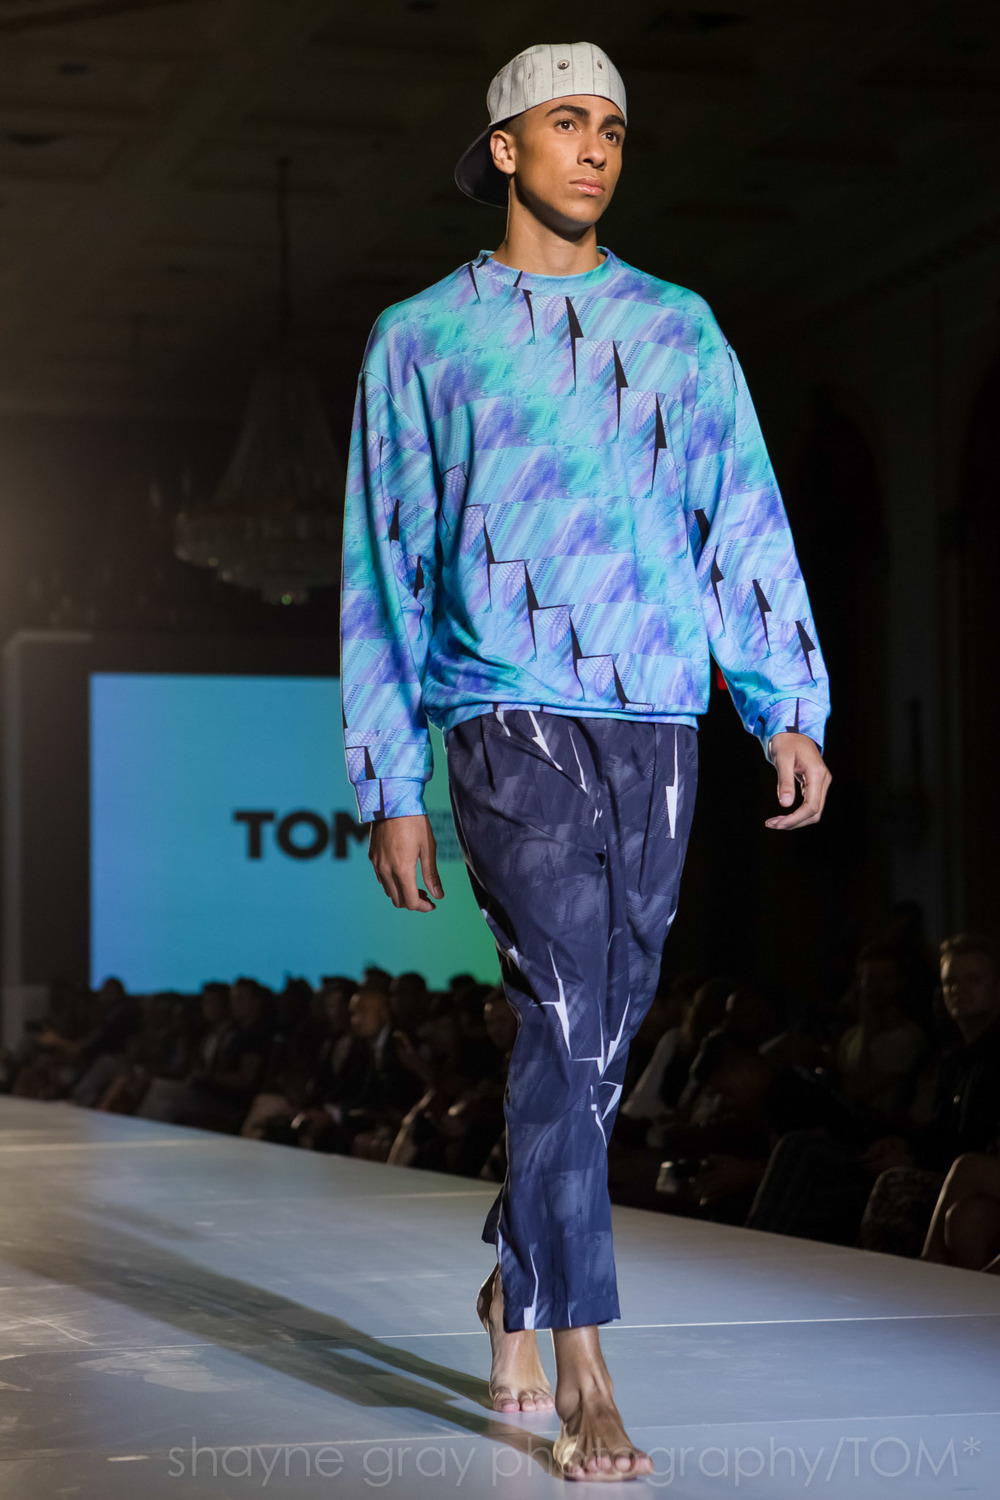 Shayne-Gray-Toronto-men's-fashion_week-TOM-tothem-6906.jpg